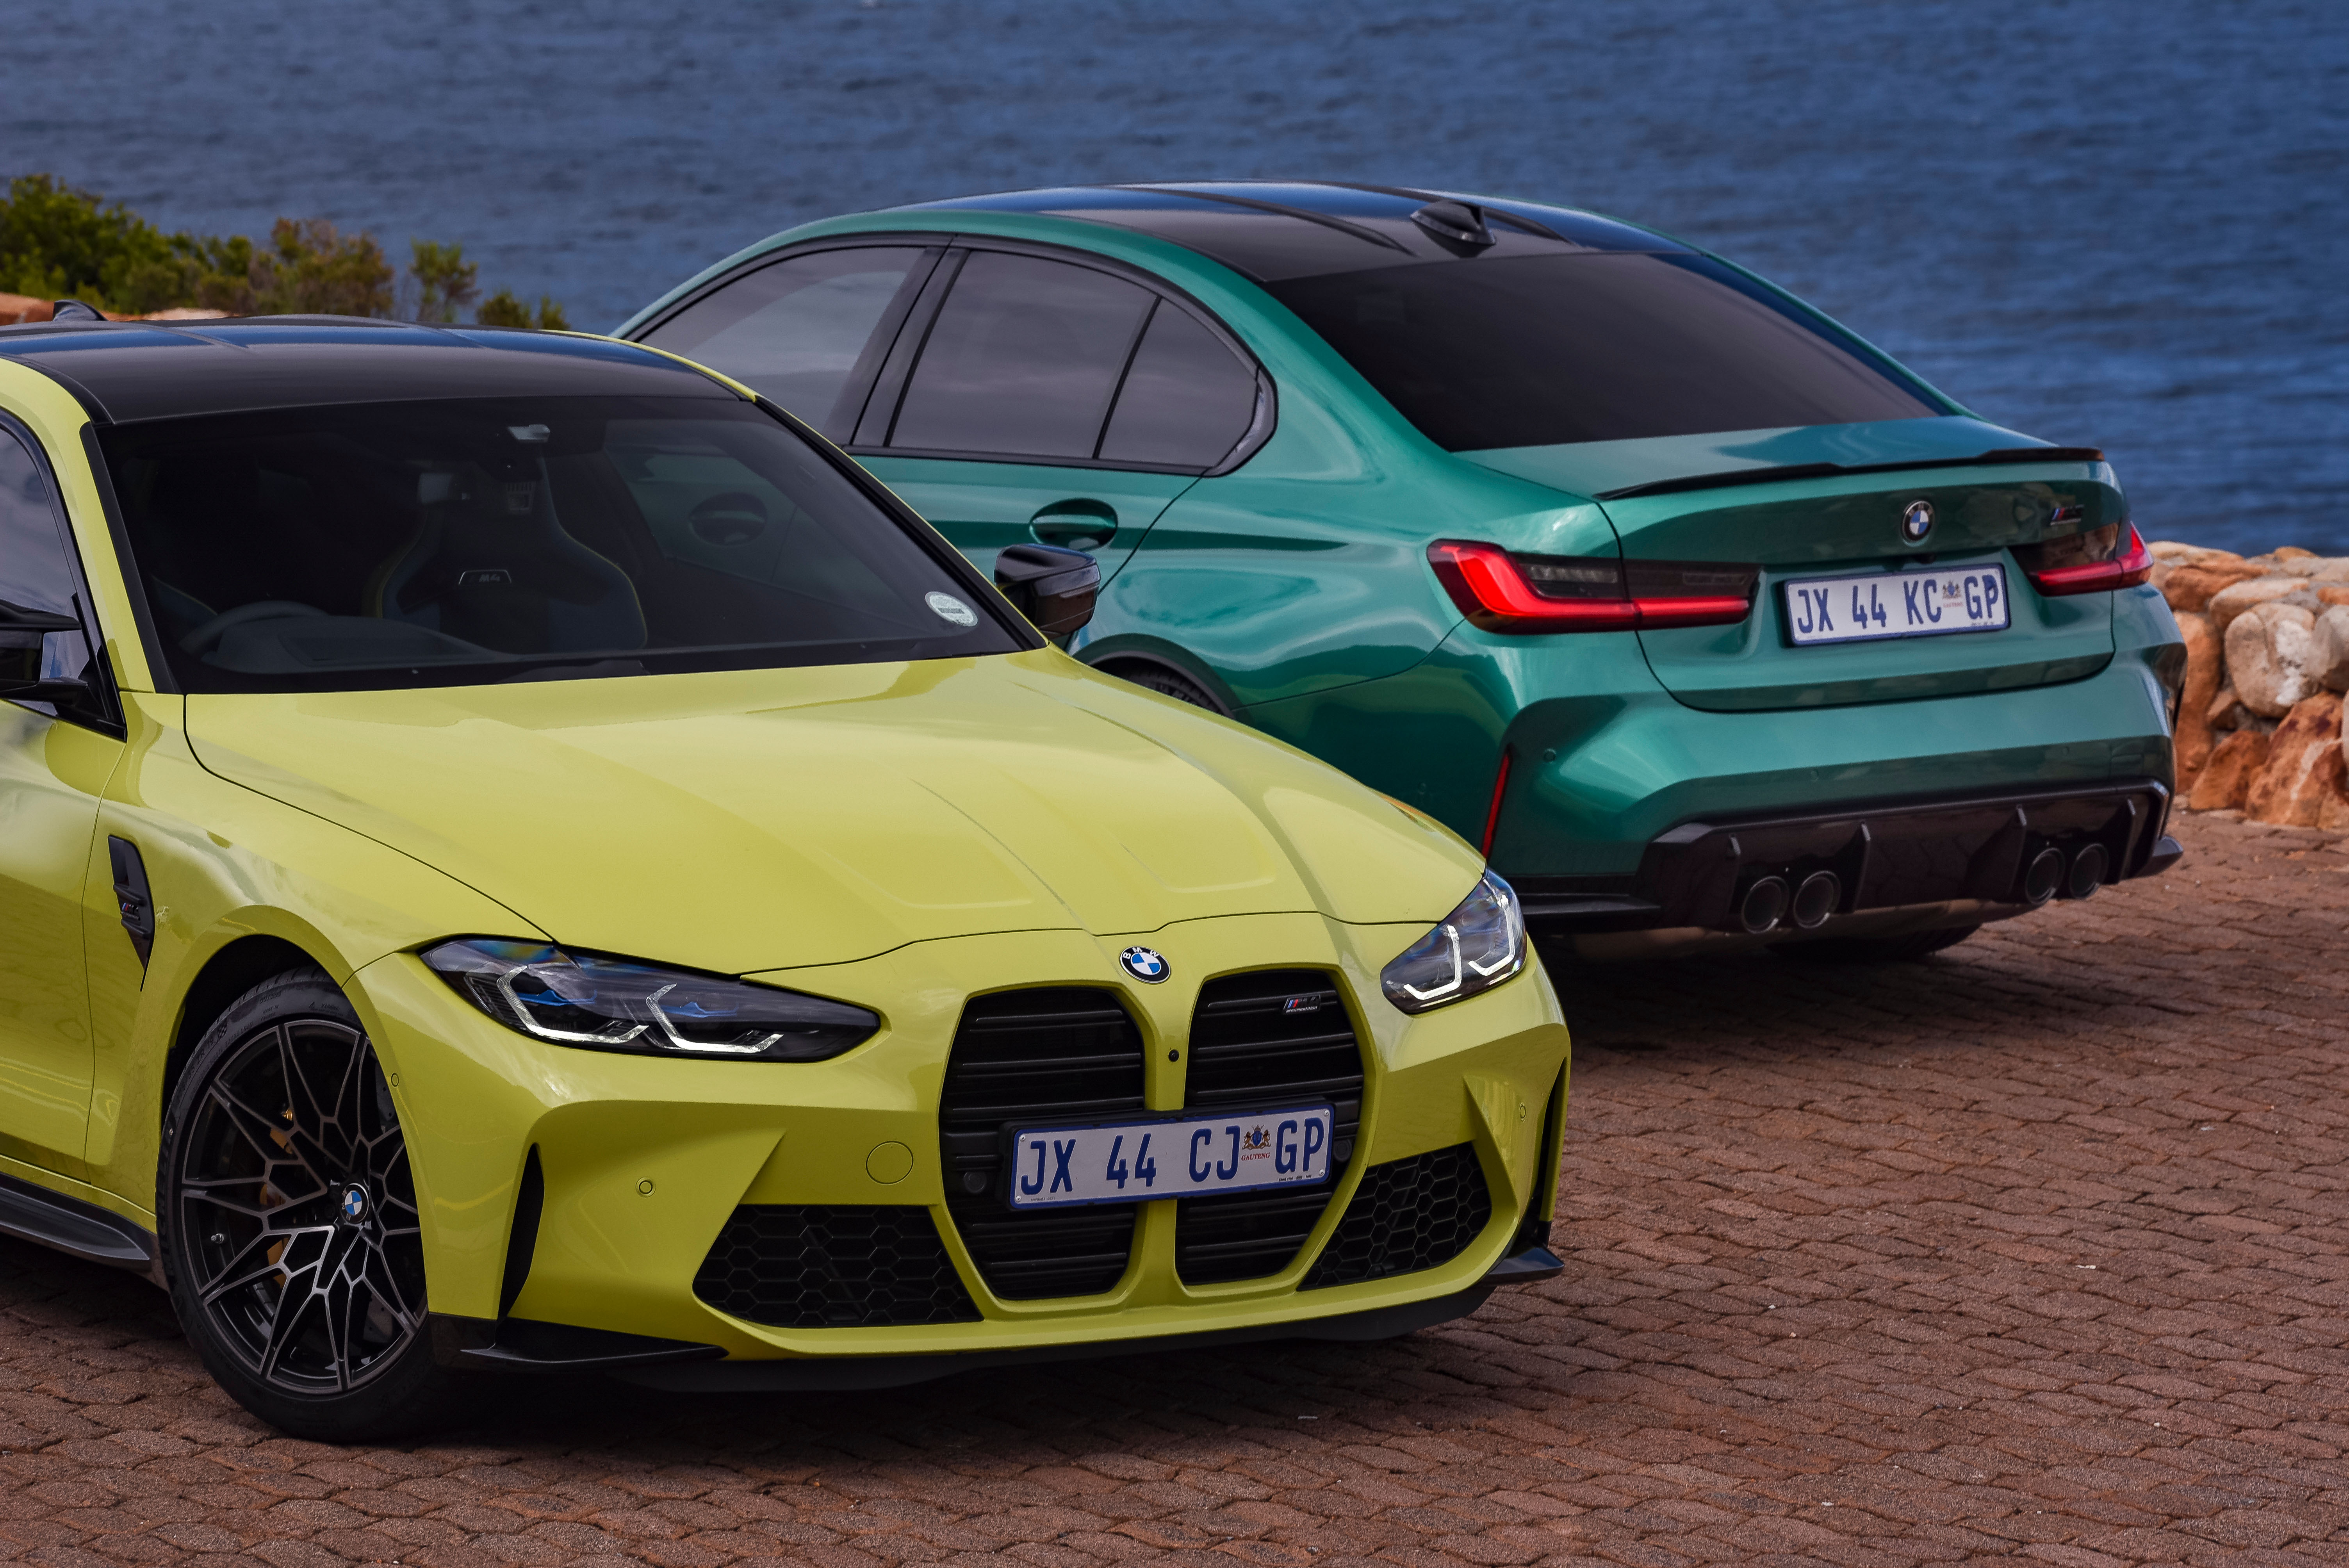 The new BMW M3 & M4 Top 5